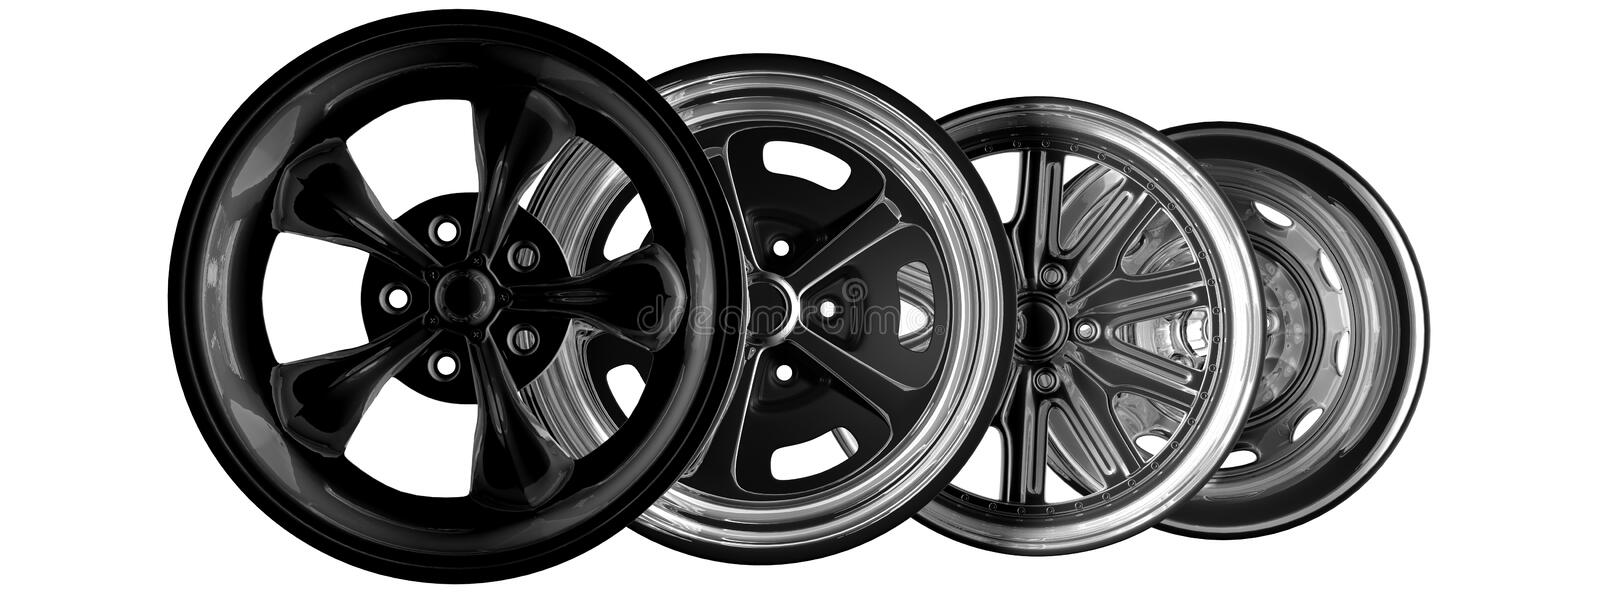 Car rims. Steel alloy car rims over the white background royalty free illustration